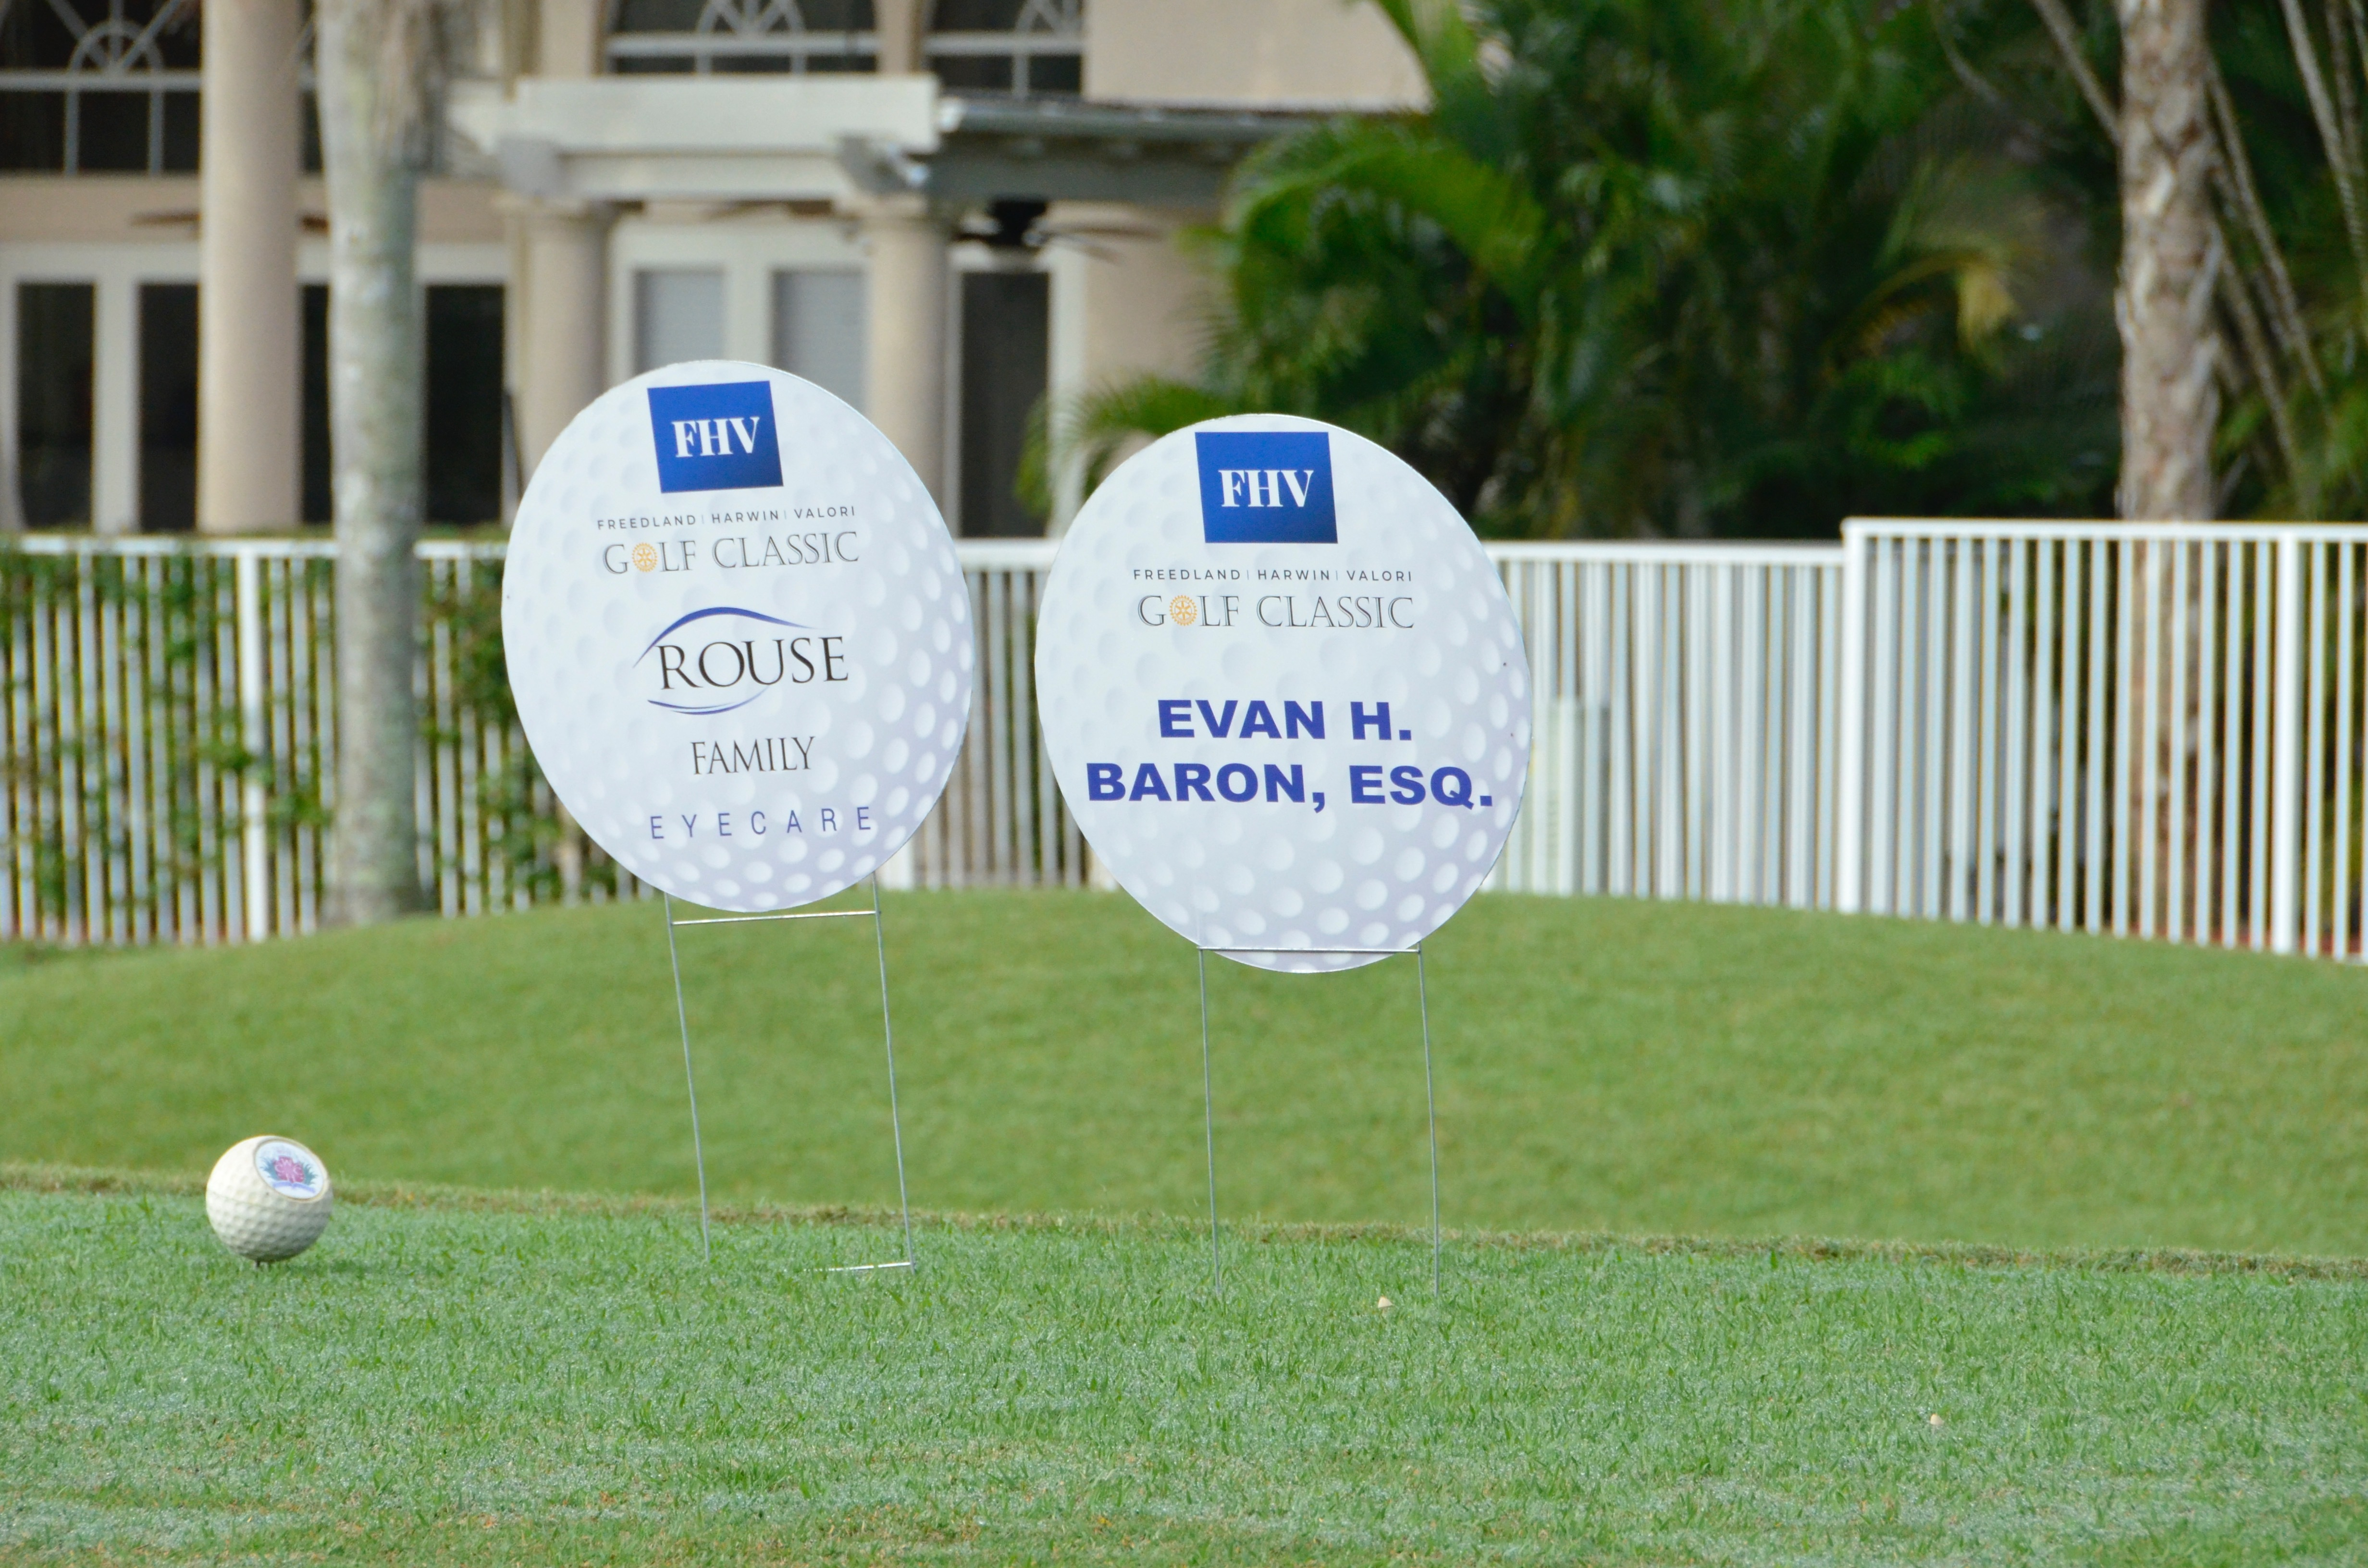 33rd Annual Rotary Golf Classic Sponsored by FHVLEGAL.COM gallery image #13